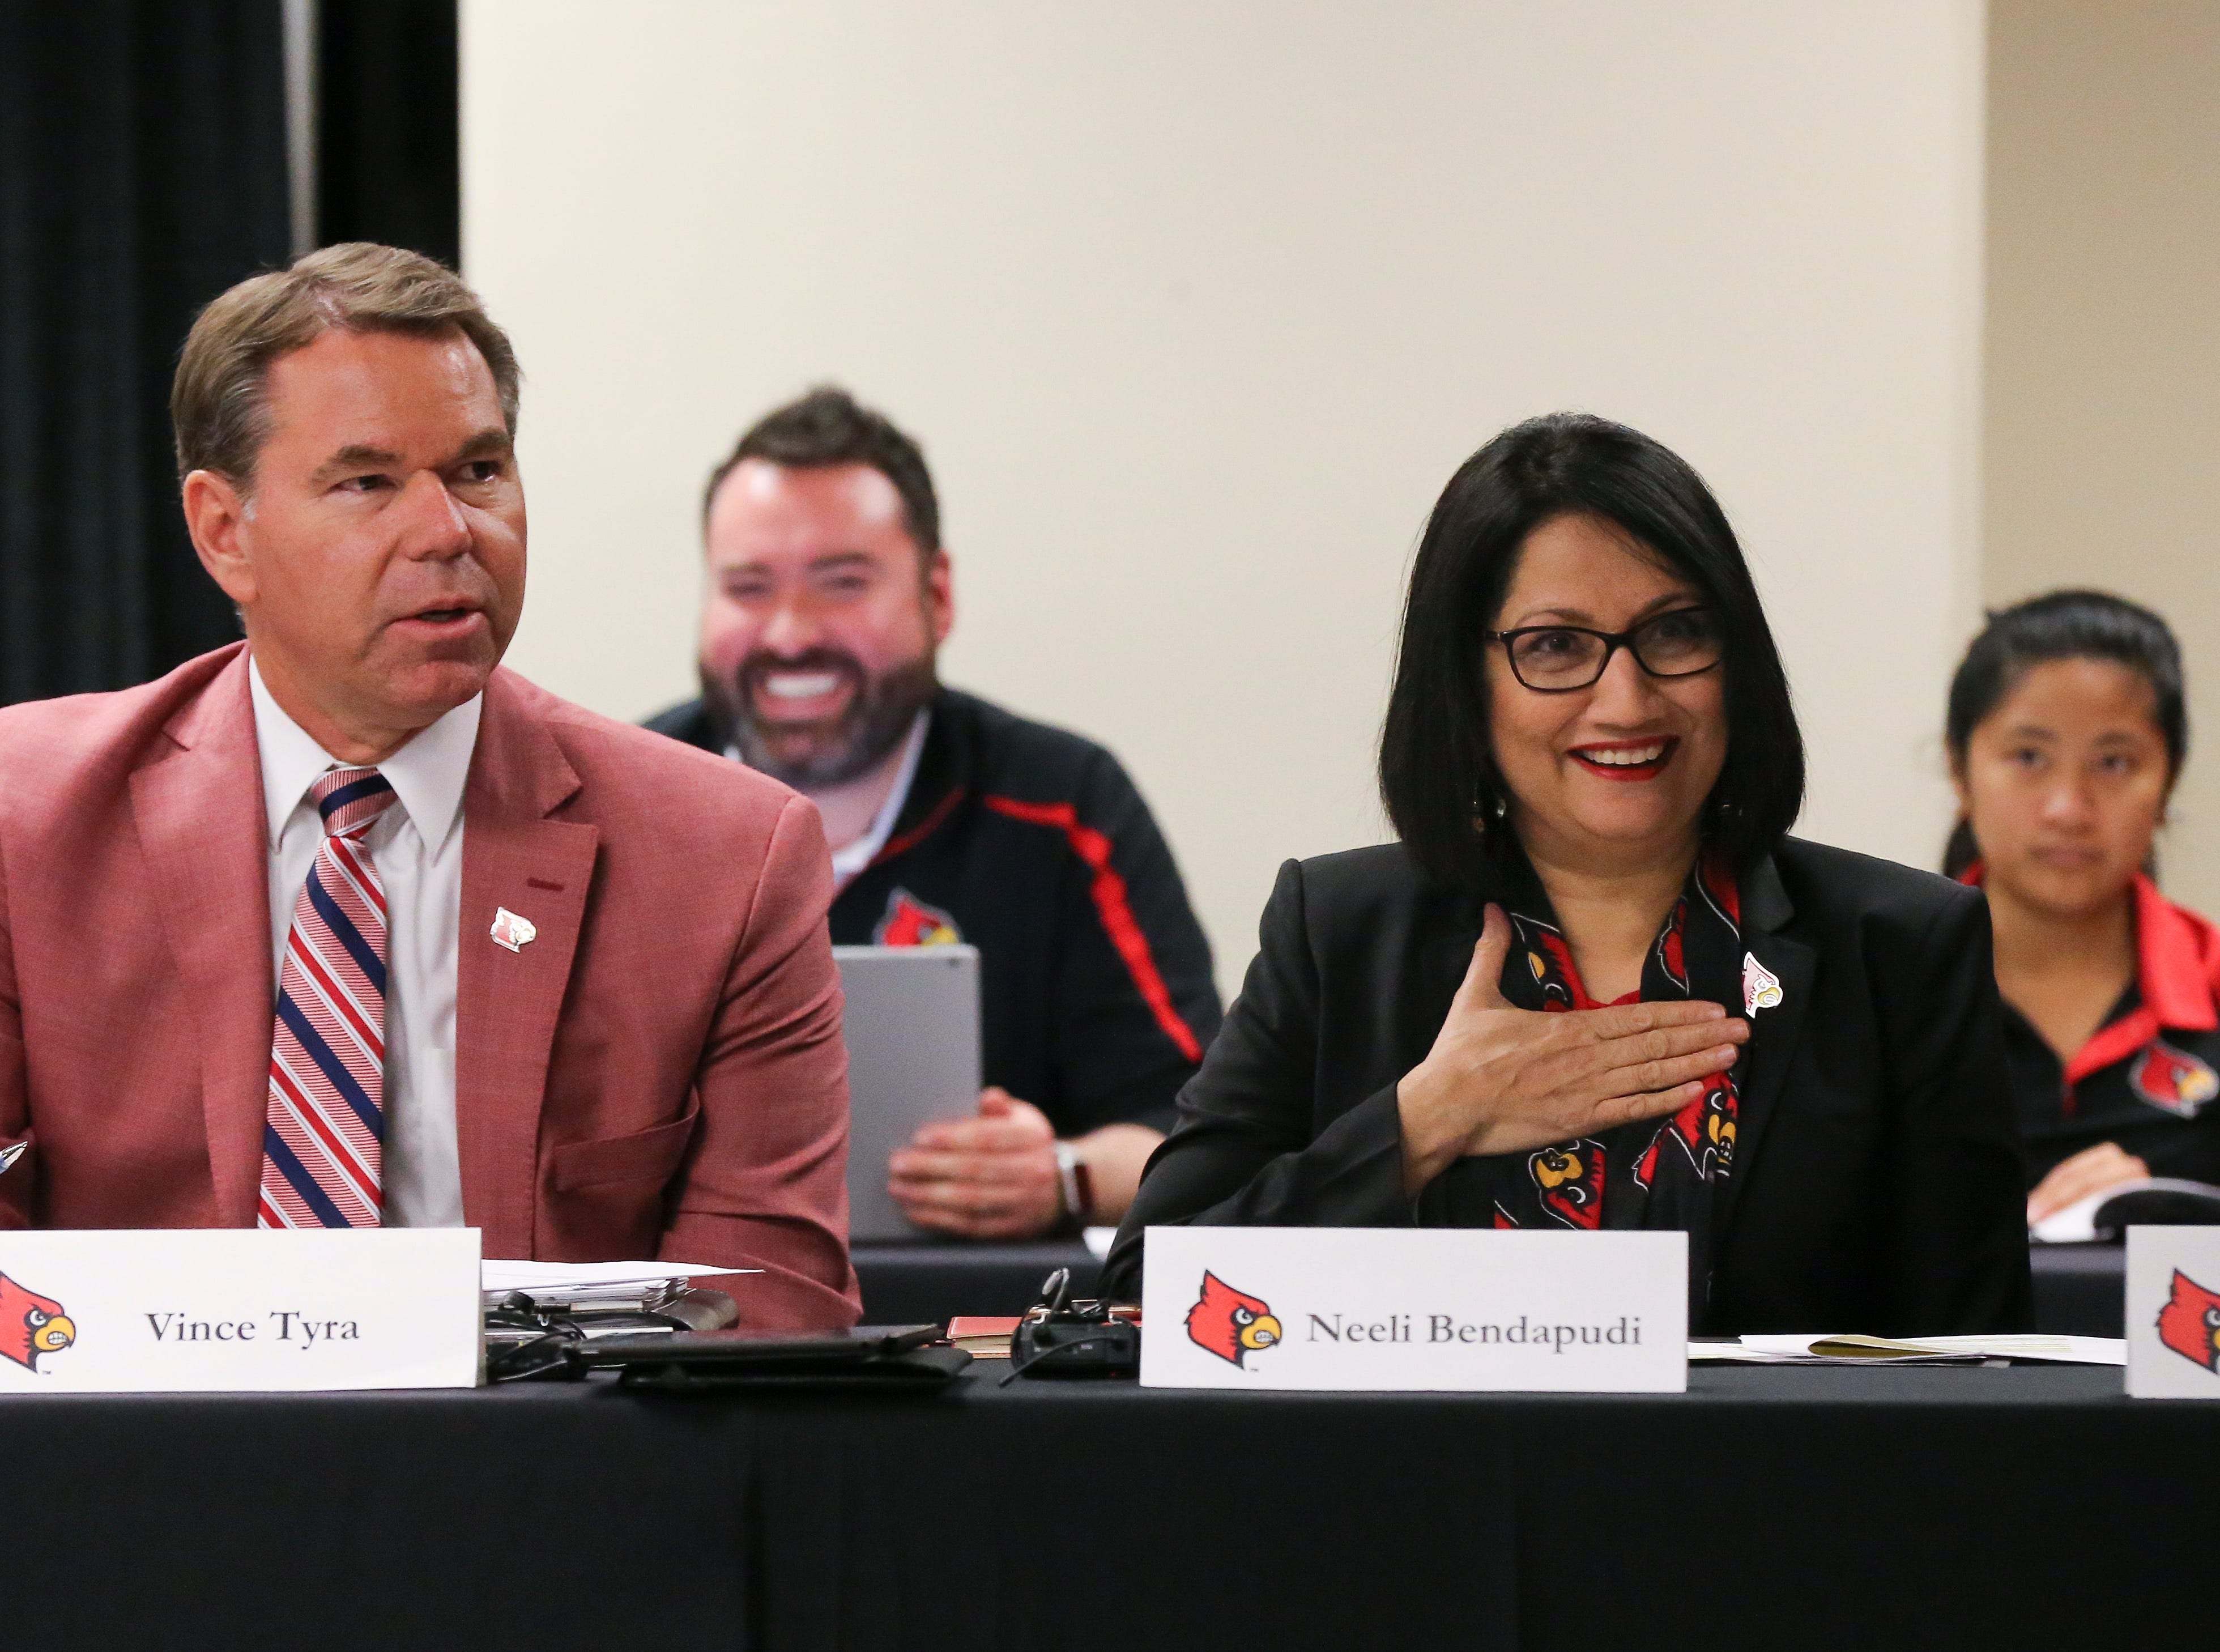 University of Louisville President Neeli Bendapudi, right, conducted the University of Louisville Athletic Association meeting as athletic director Vince Tyra sat next to her before approving Scott Satterfield as the new U of L head football coach at Cardinal Stadium.  Dec. 4, 2018